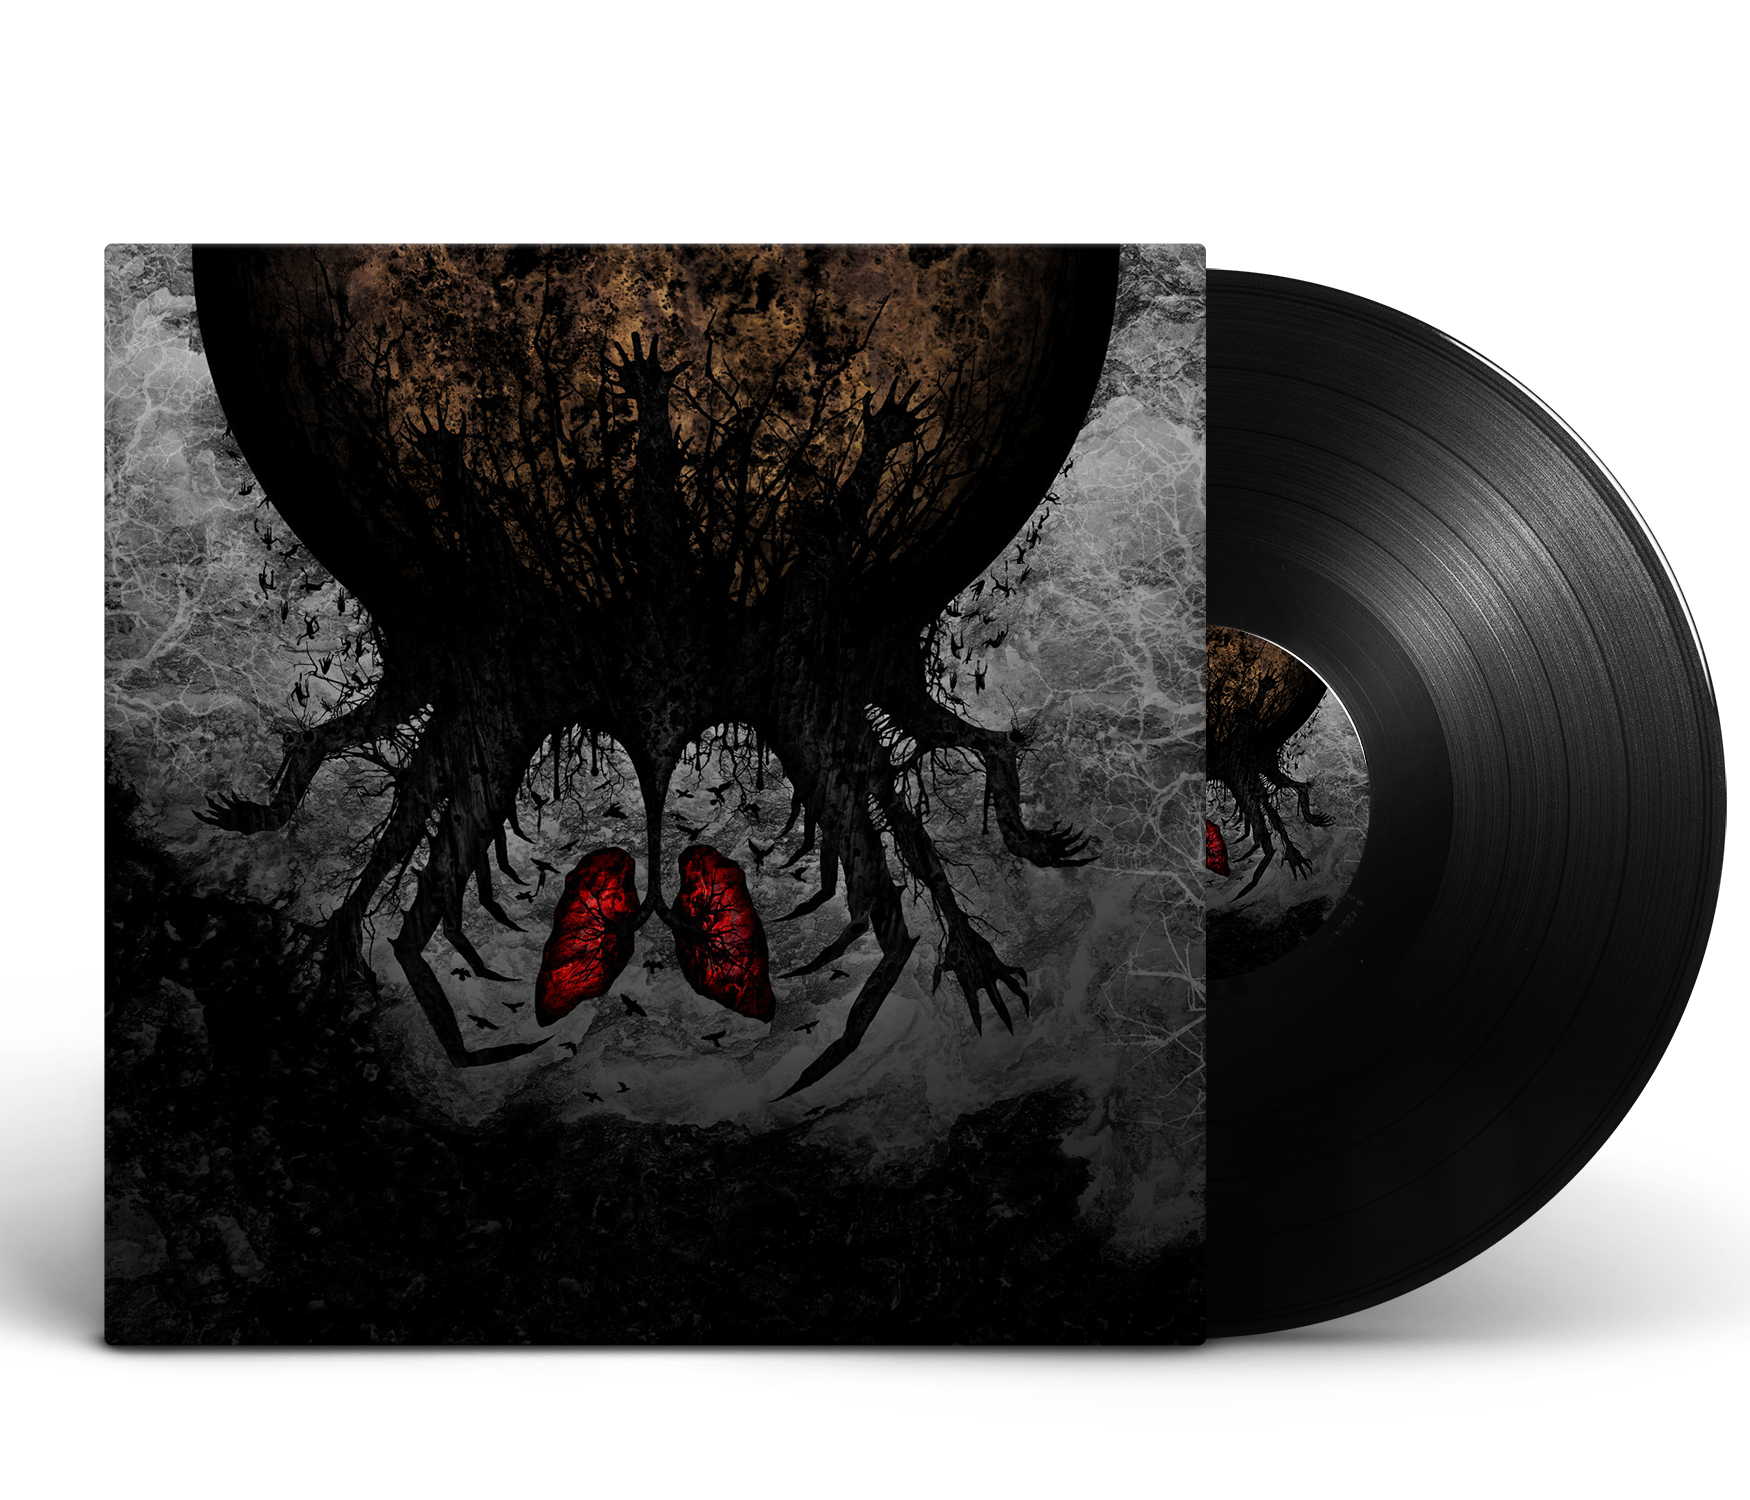 Humanity's Last Breath - Remixed and Remastered Vinyl